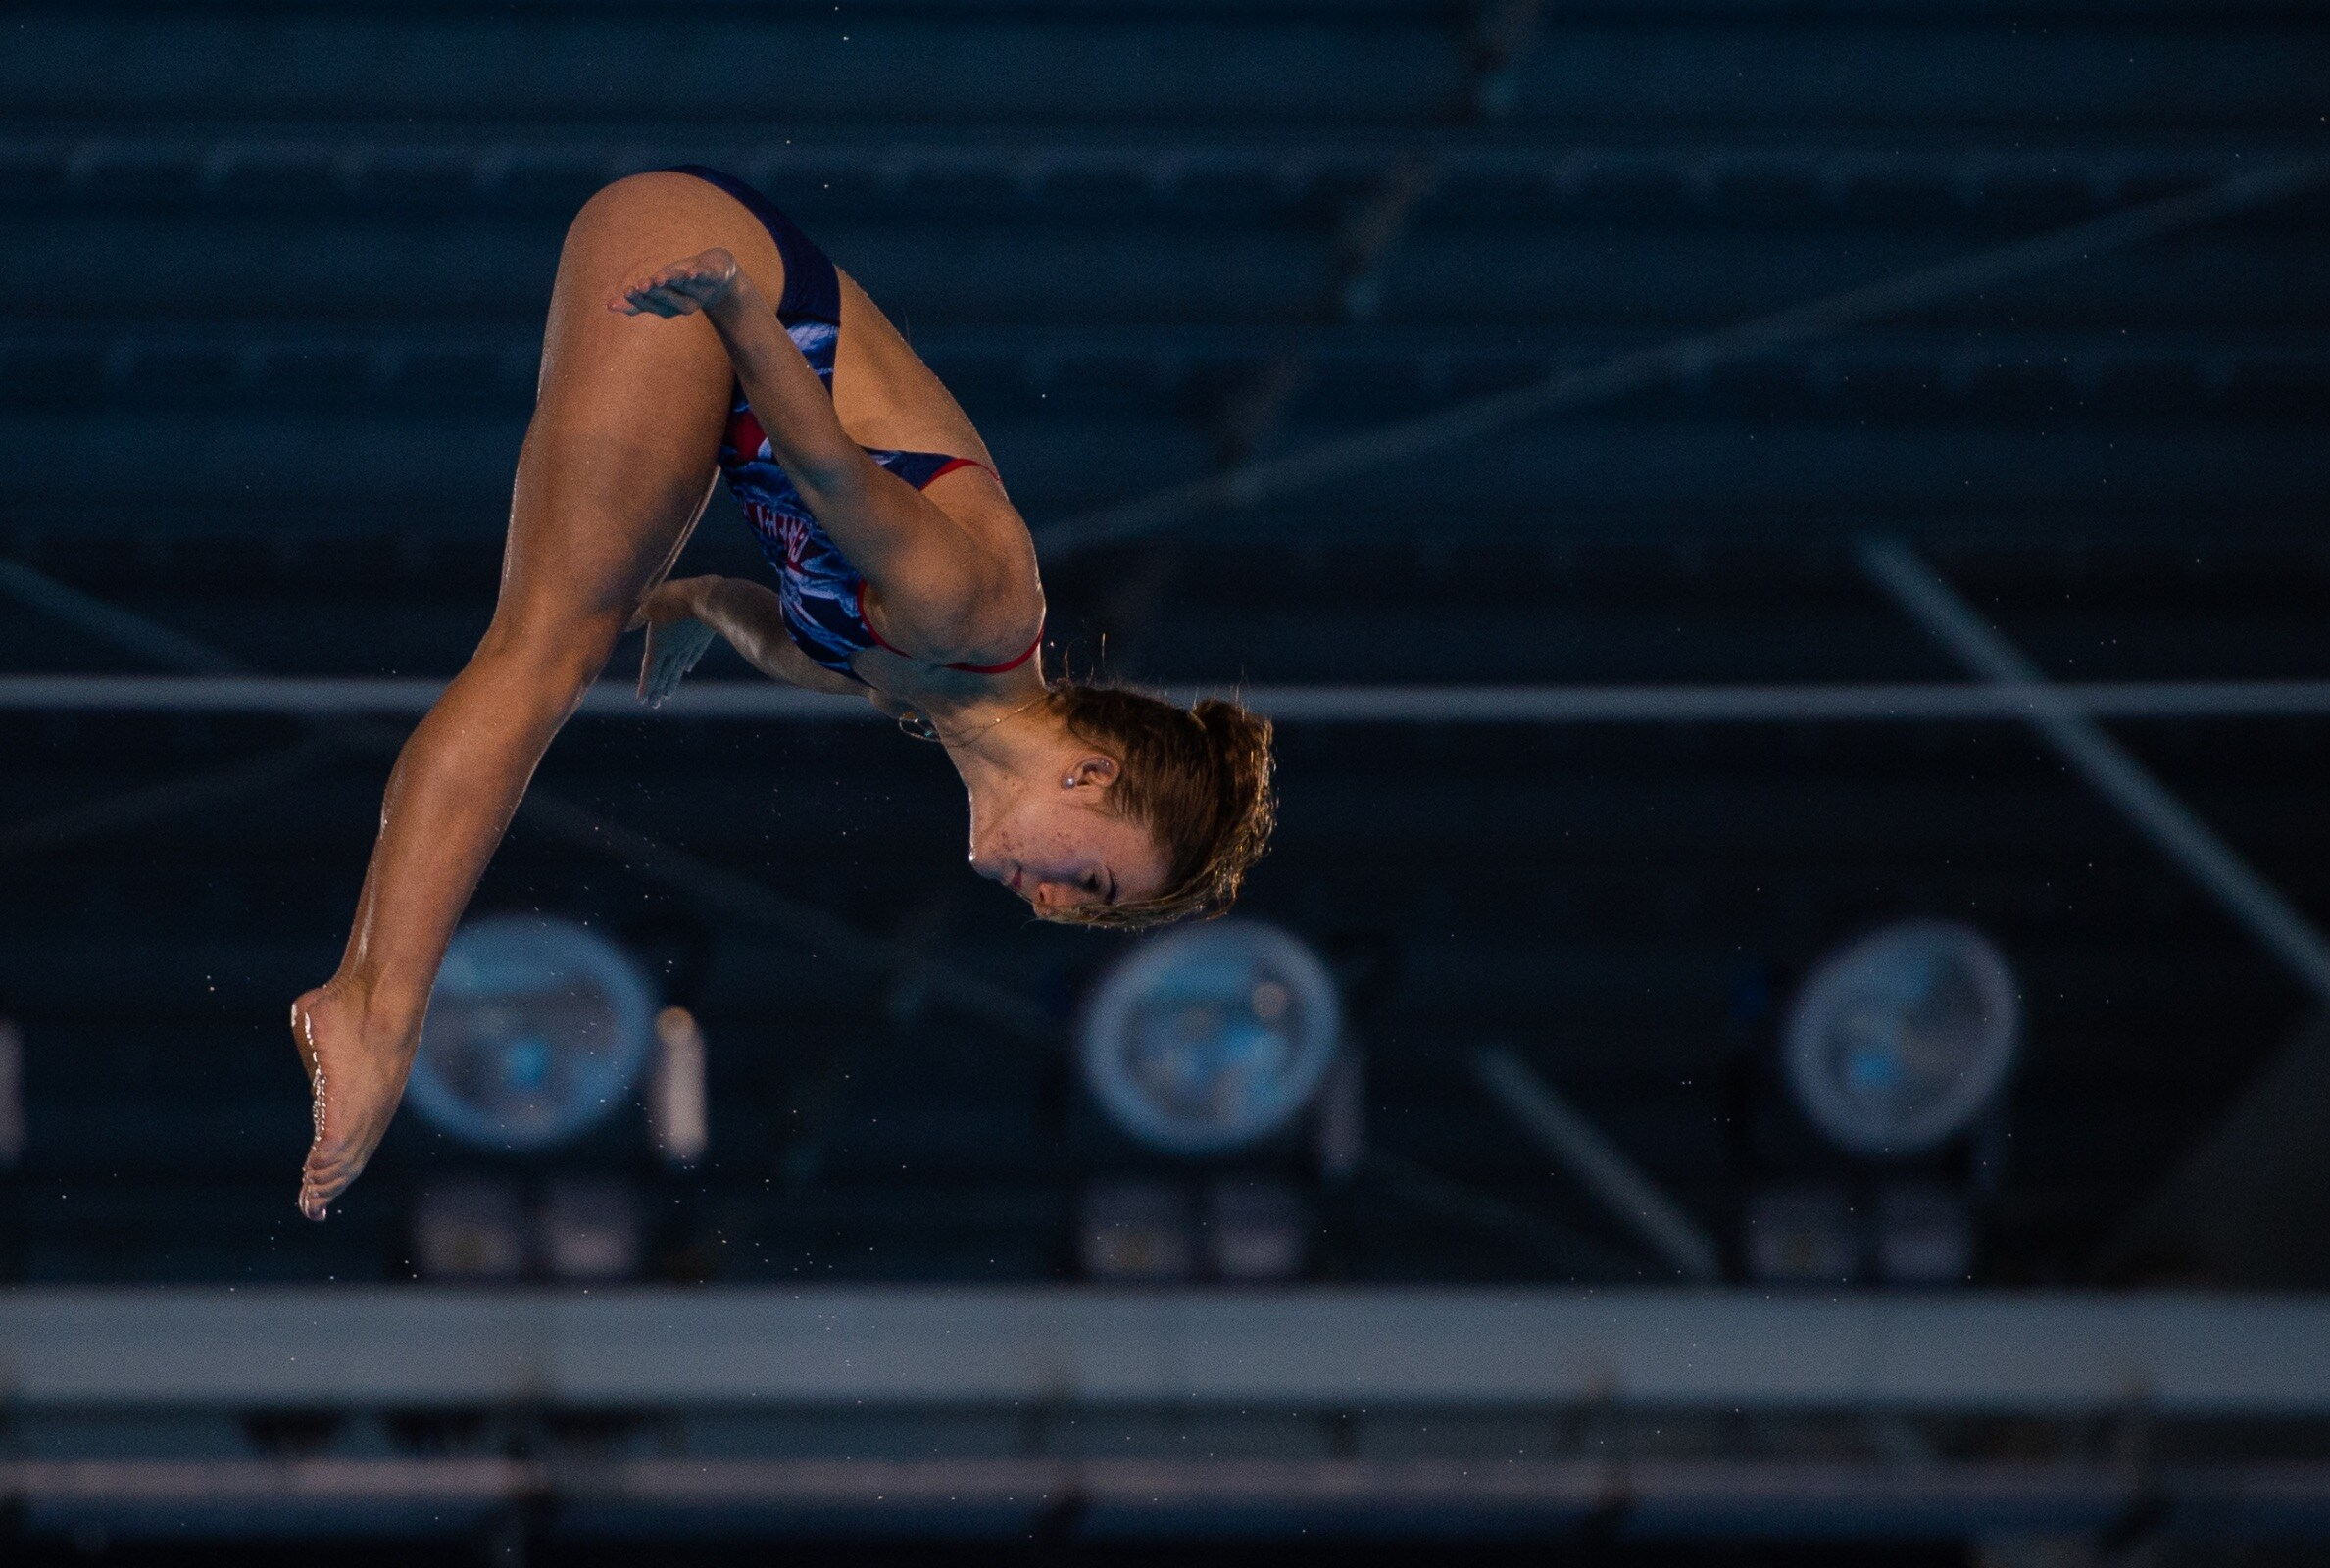 Buenos Aires 2018 - Diving - Mixed International Team - 3m & 10m